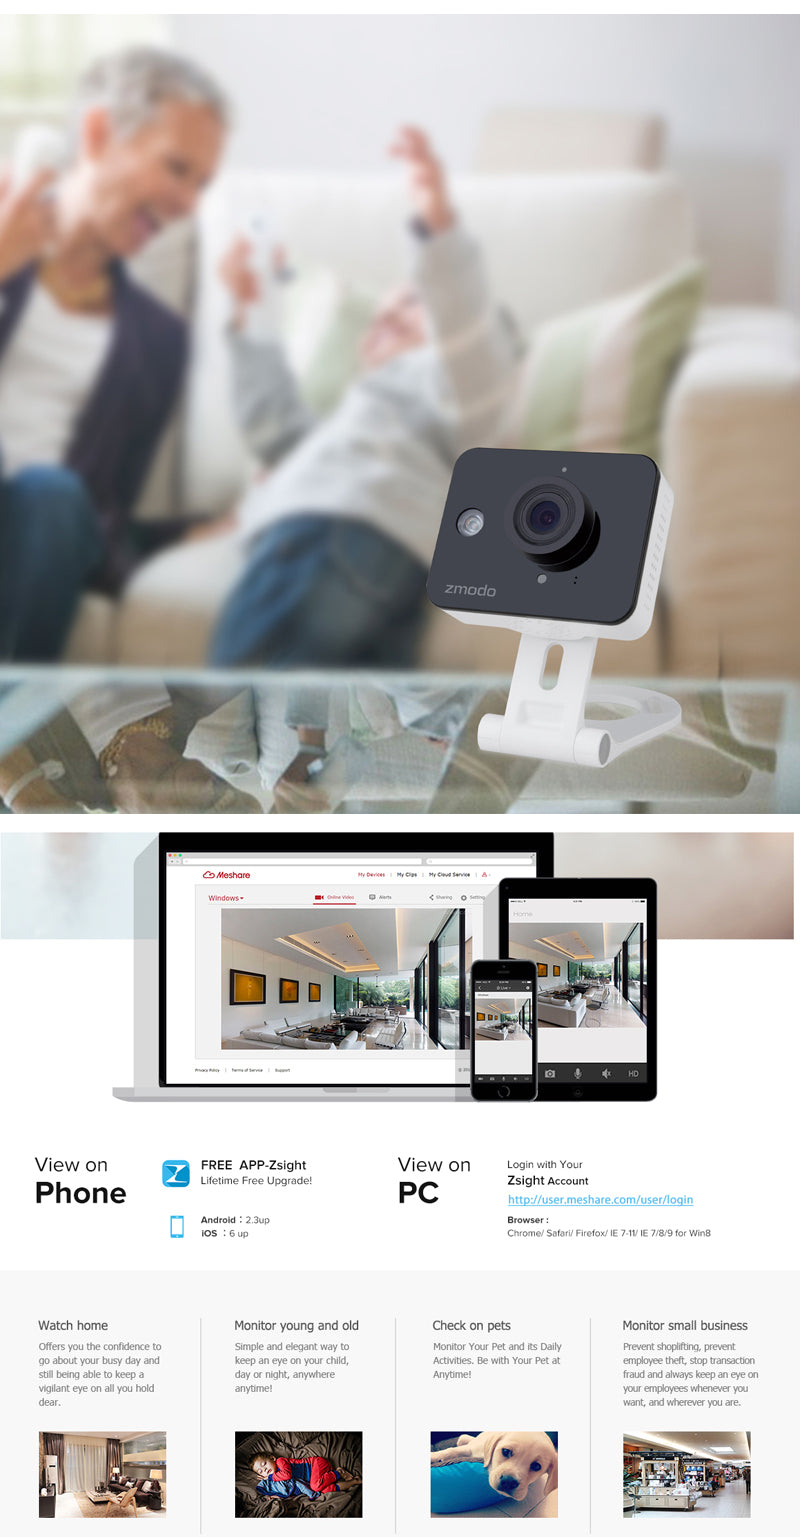 Zmodo ZM-SH75D001 720p HD Mini WiFi Camera with Two-way Audio and Remote Monitoring